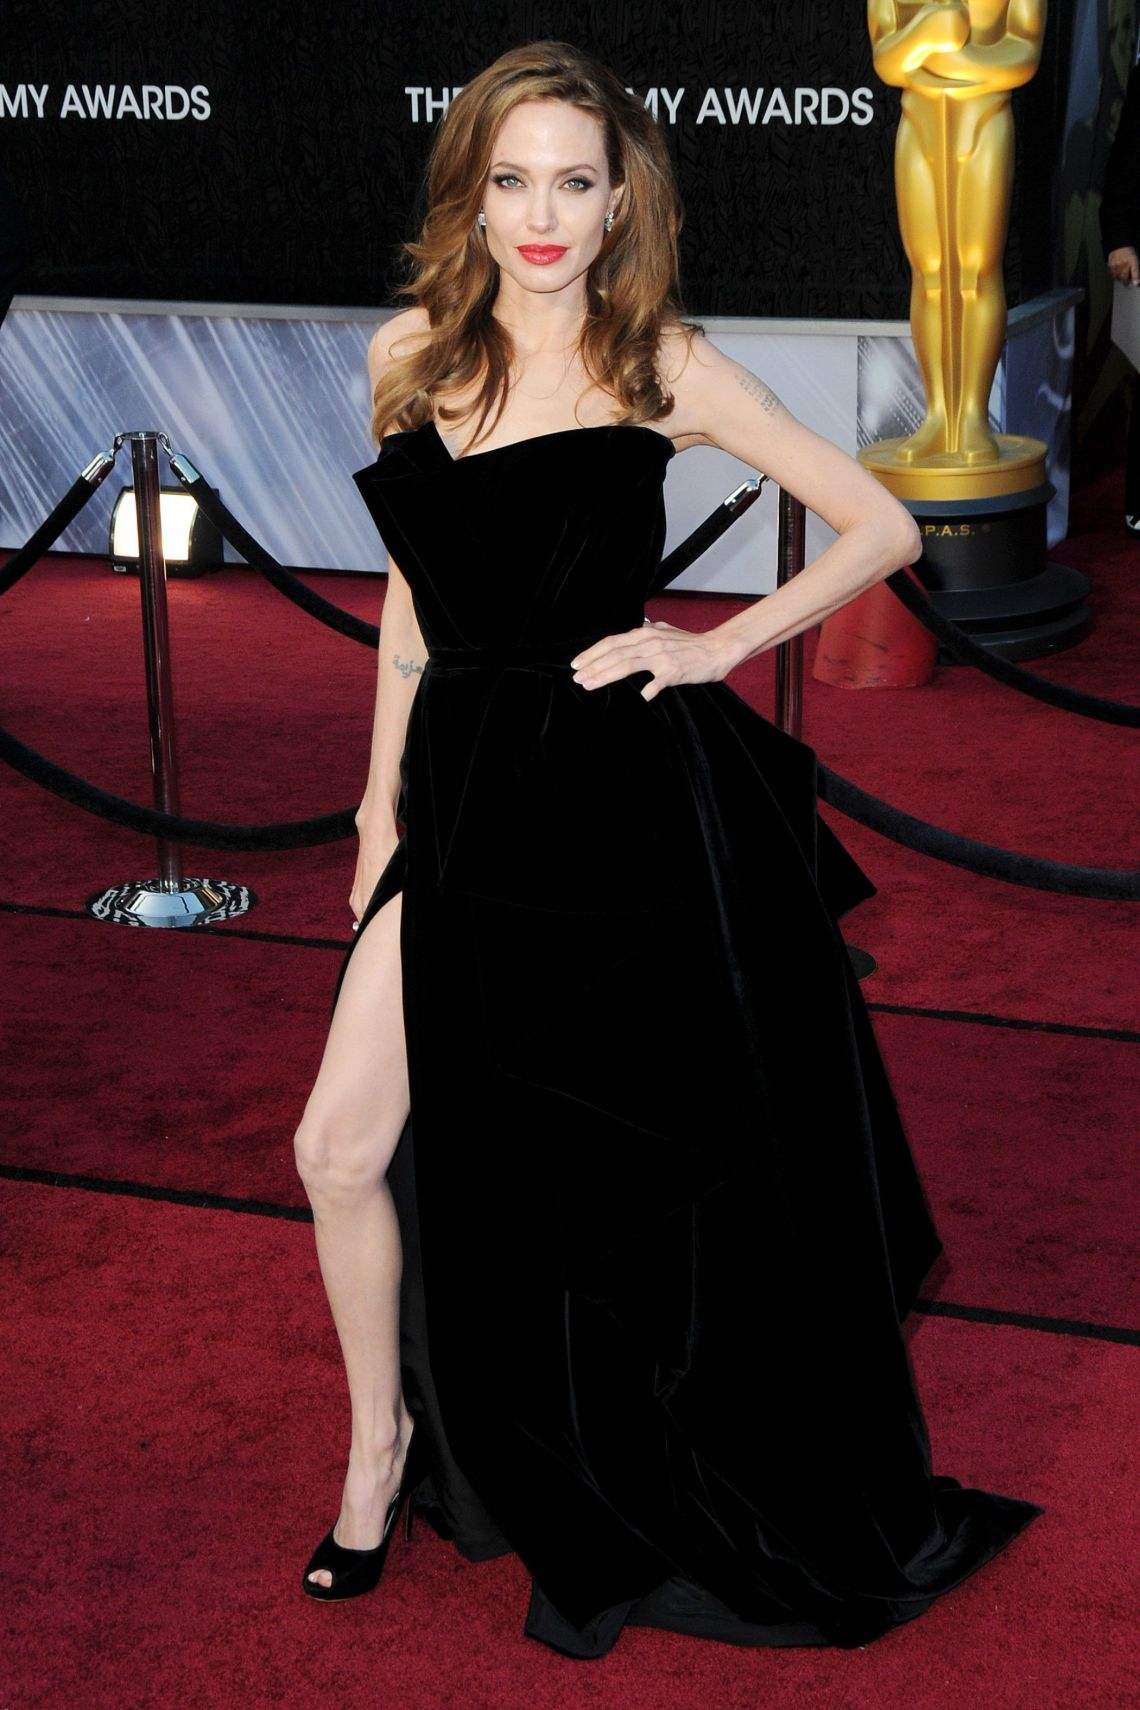 All these years later, it feels like the reaction to Angelina Jolie's leg bomb might have been a bit OTT, but back in 2012, her errant right leg really felt like a moment.